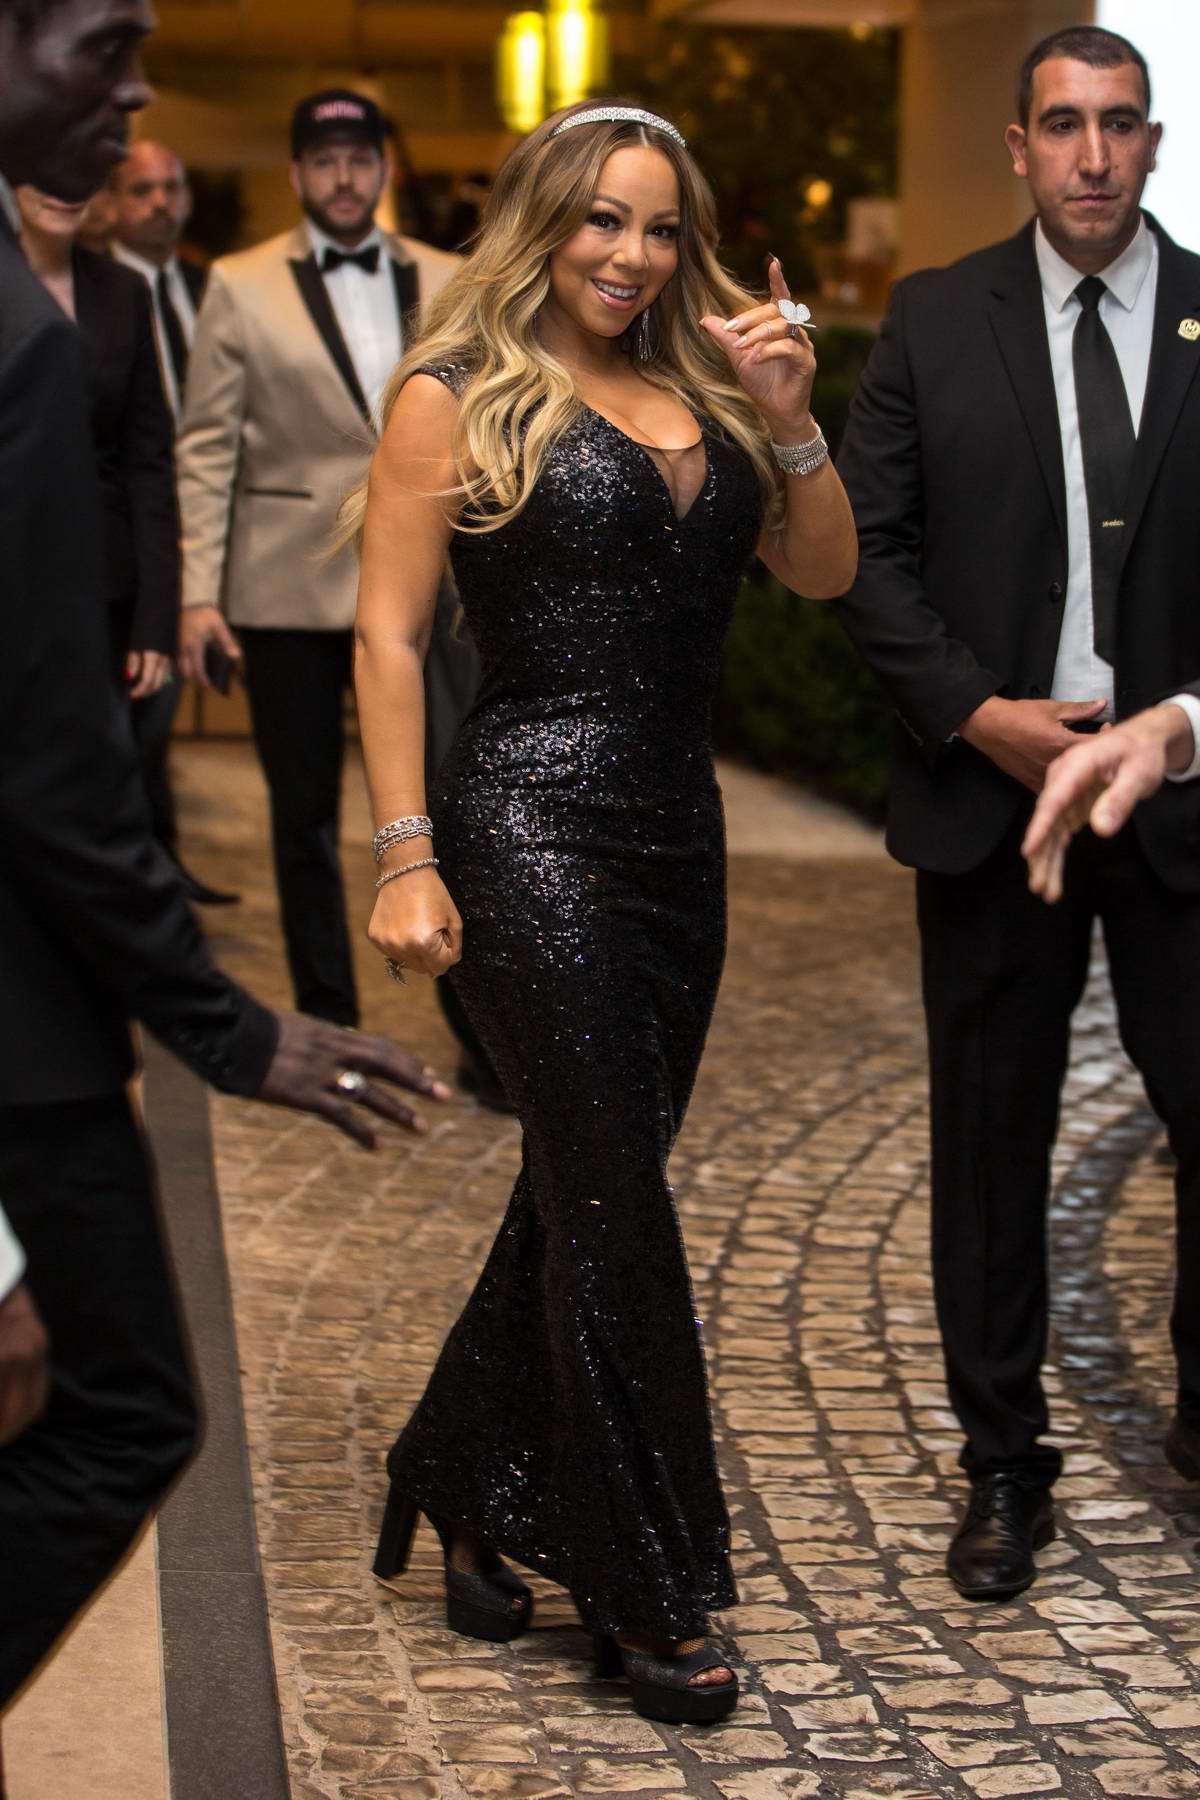 Mariah Carey seen leaving the Martinez Hotel during 72nd annual Cannes Film Festival in Cannes, France